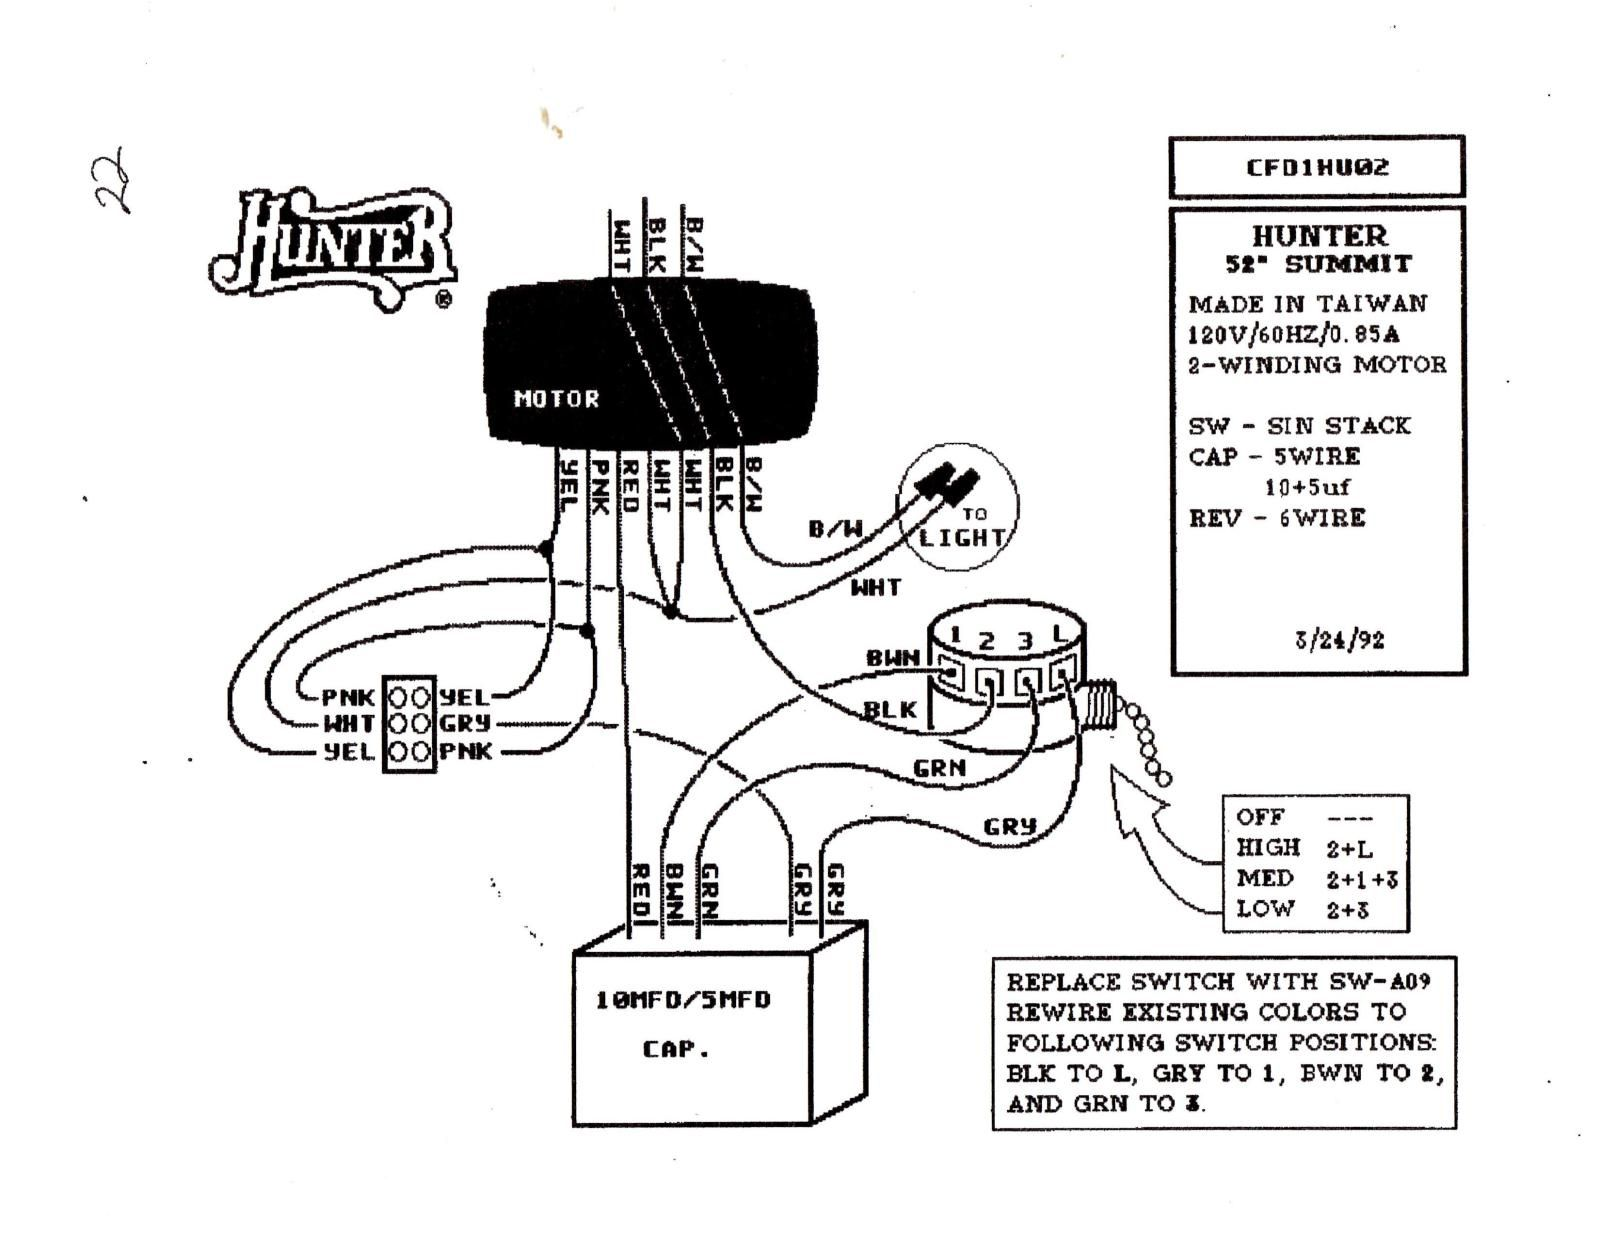 Hunter Ceiling Fan Sd Switch Wiring Diagram | Switch | Ceiling ... on push button start wiring diagram, hampton bay ceiling fans electrical diagram, ceiling fan remote wiring diagram, hampton bay fan wiring harness, casablanca ceiling fan wiring diagram, hampton bay fan wiring model cr552r1, hampton bay ventilation fan wiring, hampton bay fan parts diagram, 4 wire ceiling fan wiring diagram, hampton bay wire order, hampton bay exhaust fans, harbor breeze wall switch diagram, hampton bay fan replacement parts, hampton bay fan wire colors, ceiling fan parts diagram, hunter fan motor wiring diagram, ceiling fan motor diagram, basement light wiring diagram, hampton bay fan switch diagram, hampton bay receiver dip switches,